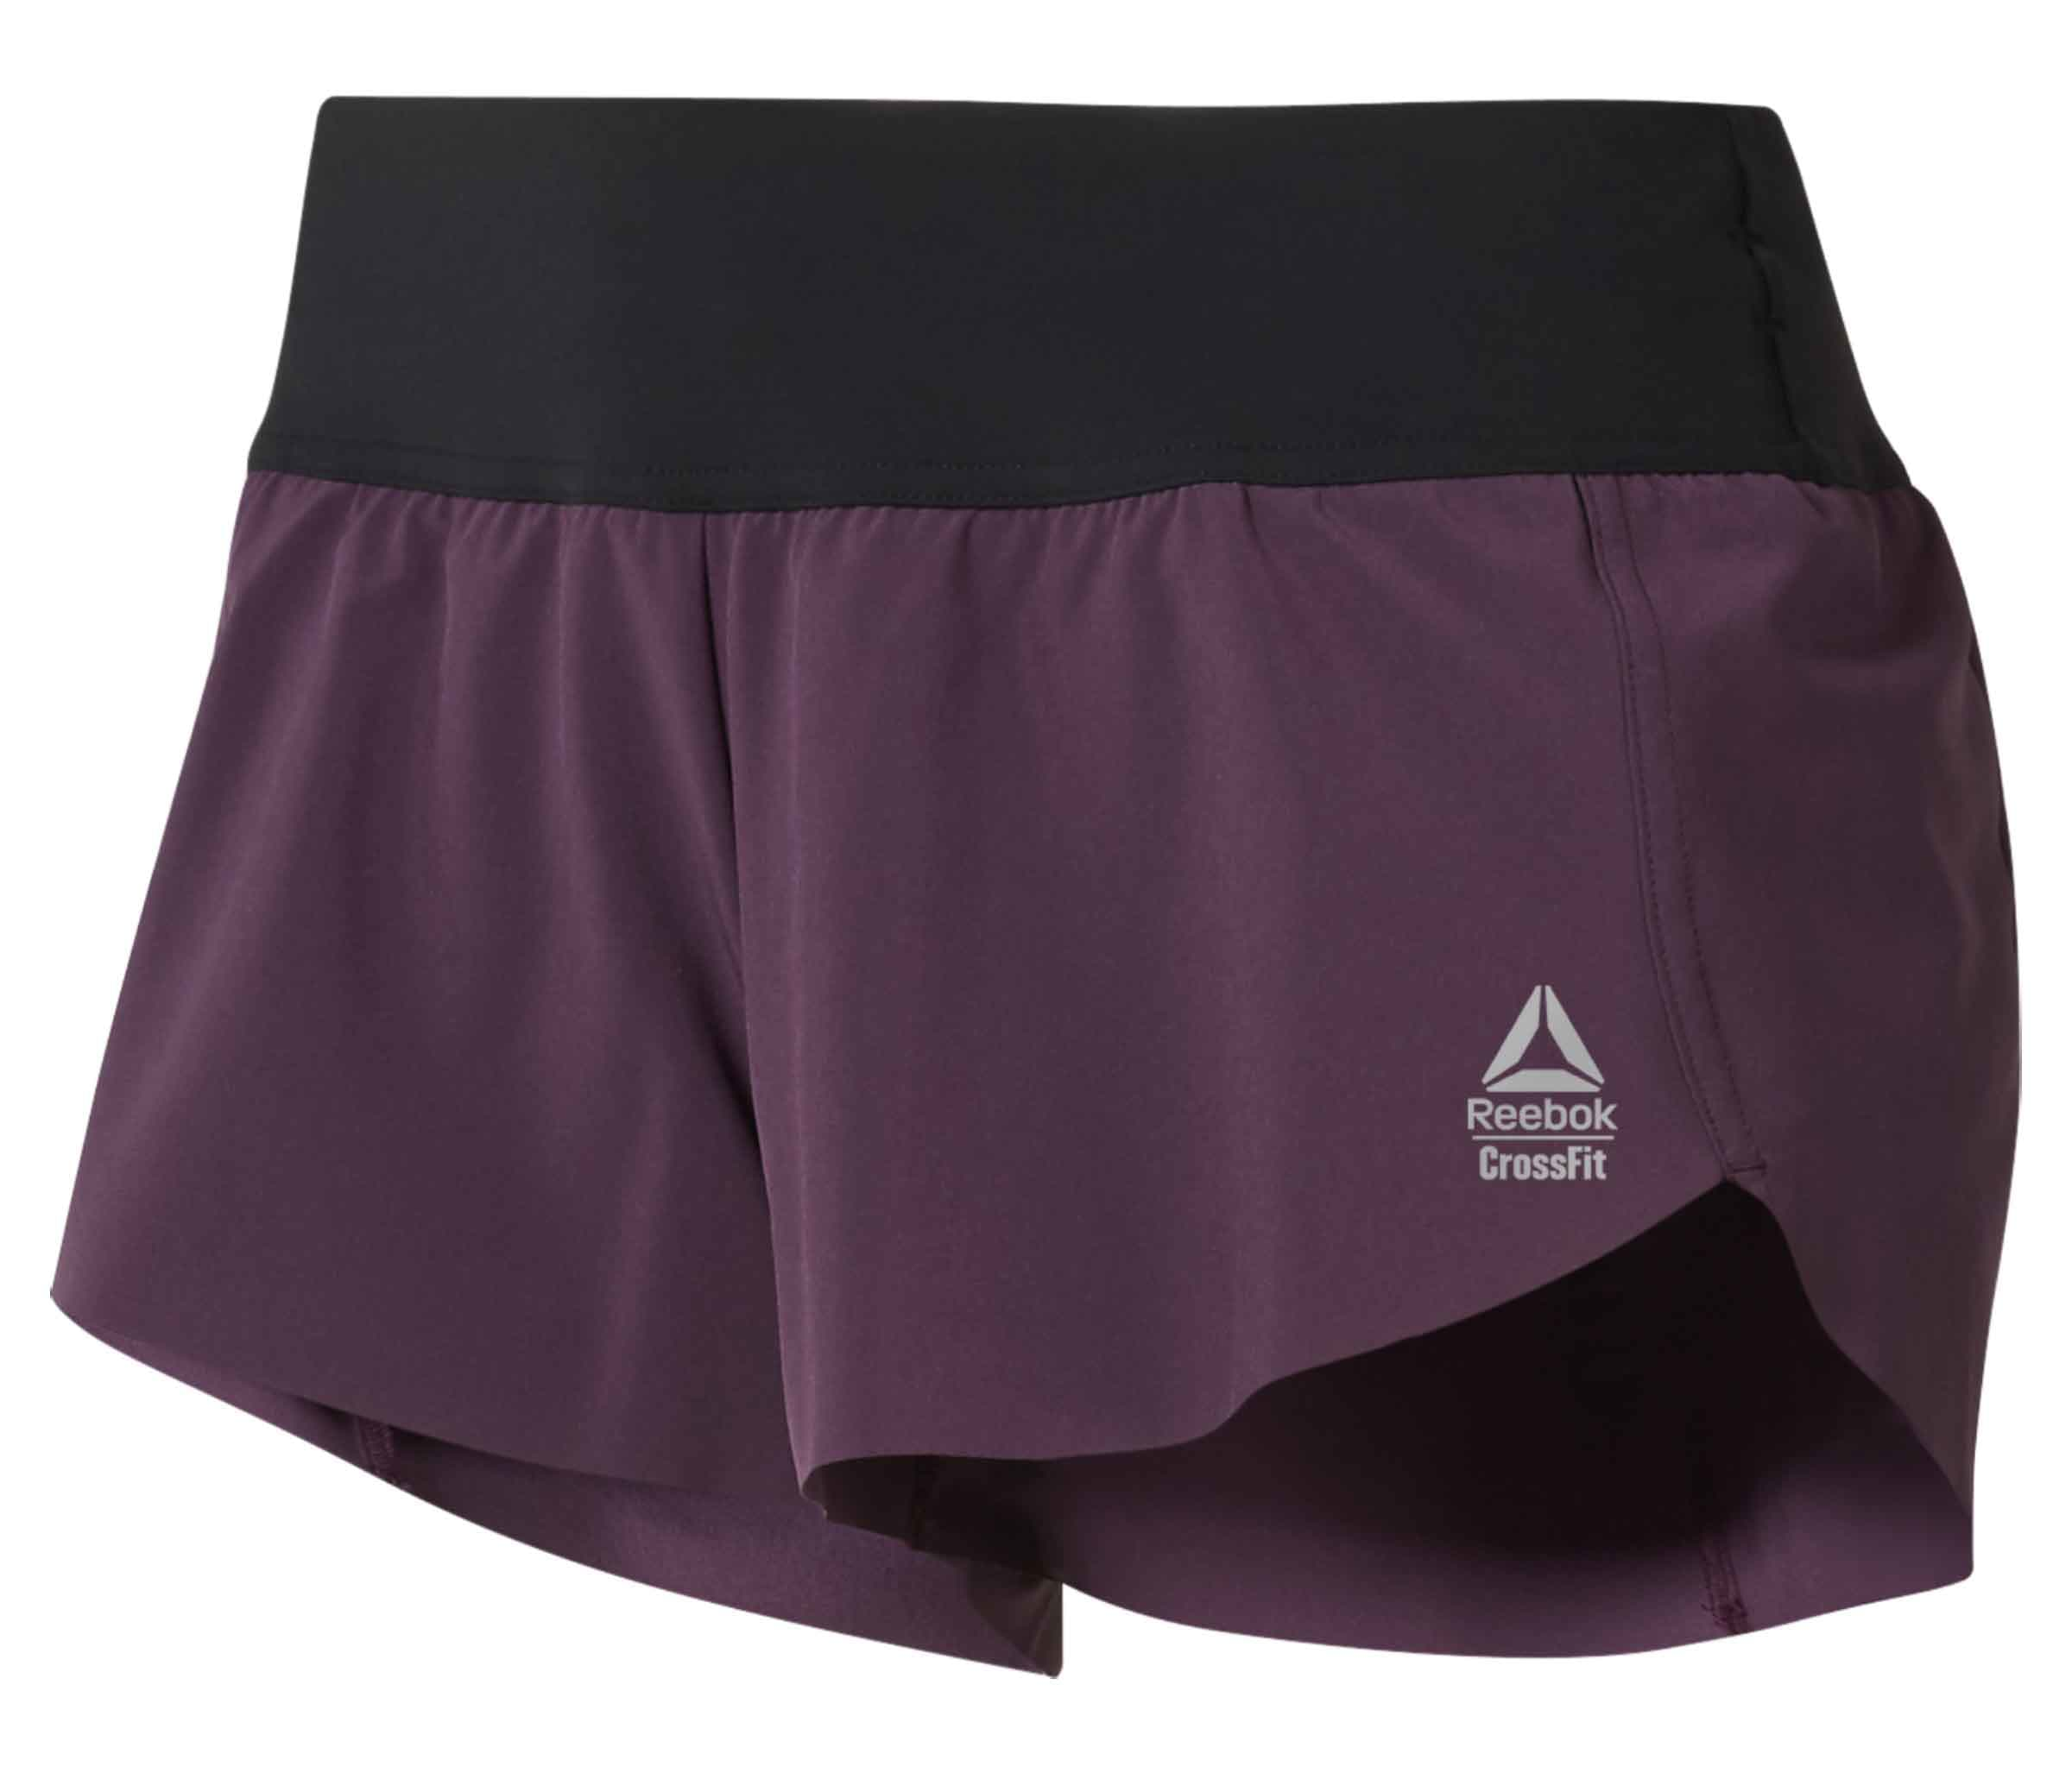 crossfit-shorts-knit-waistband